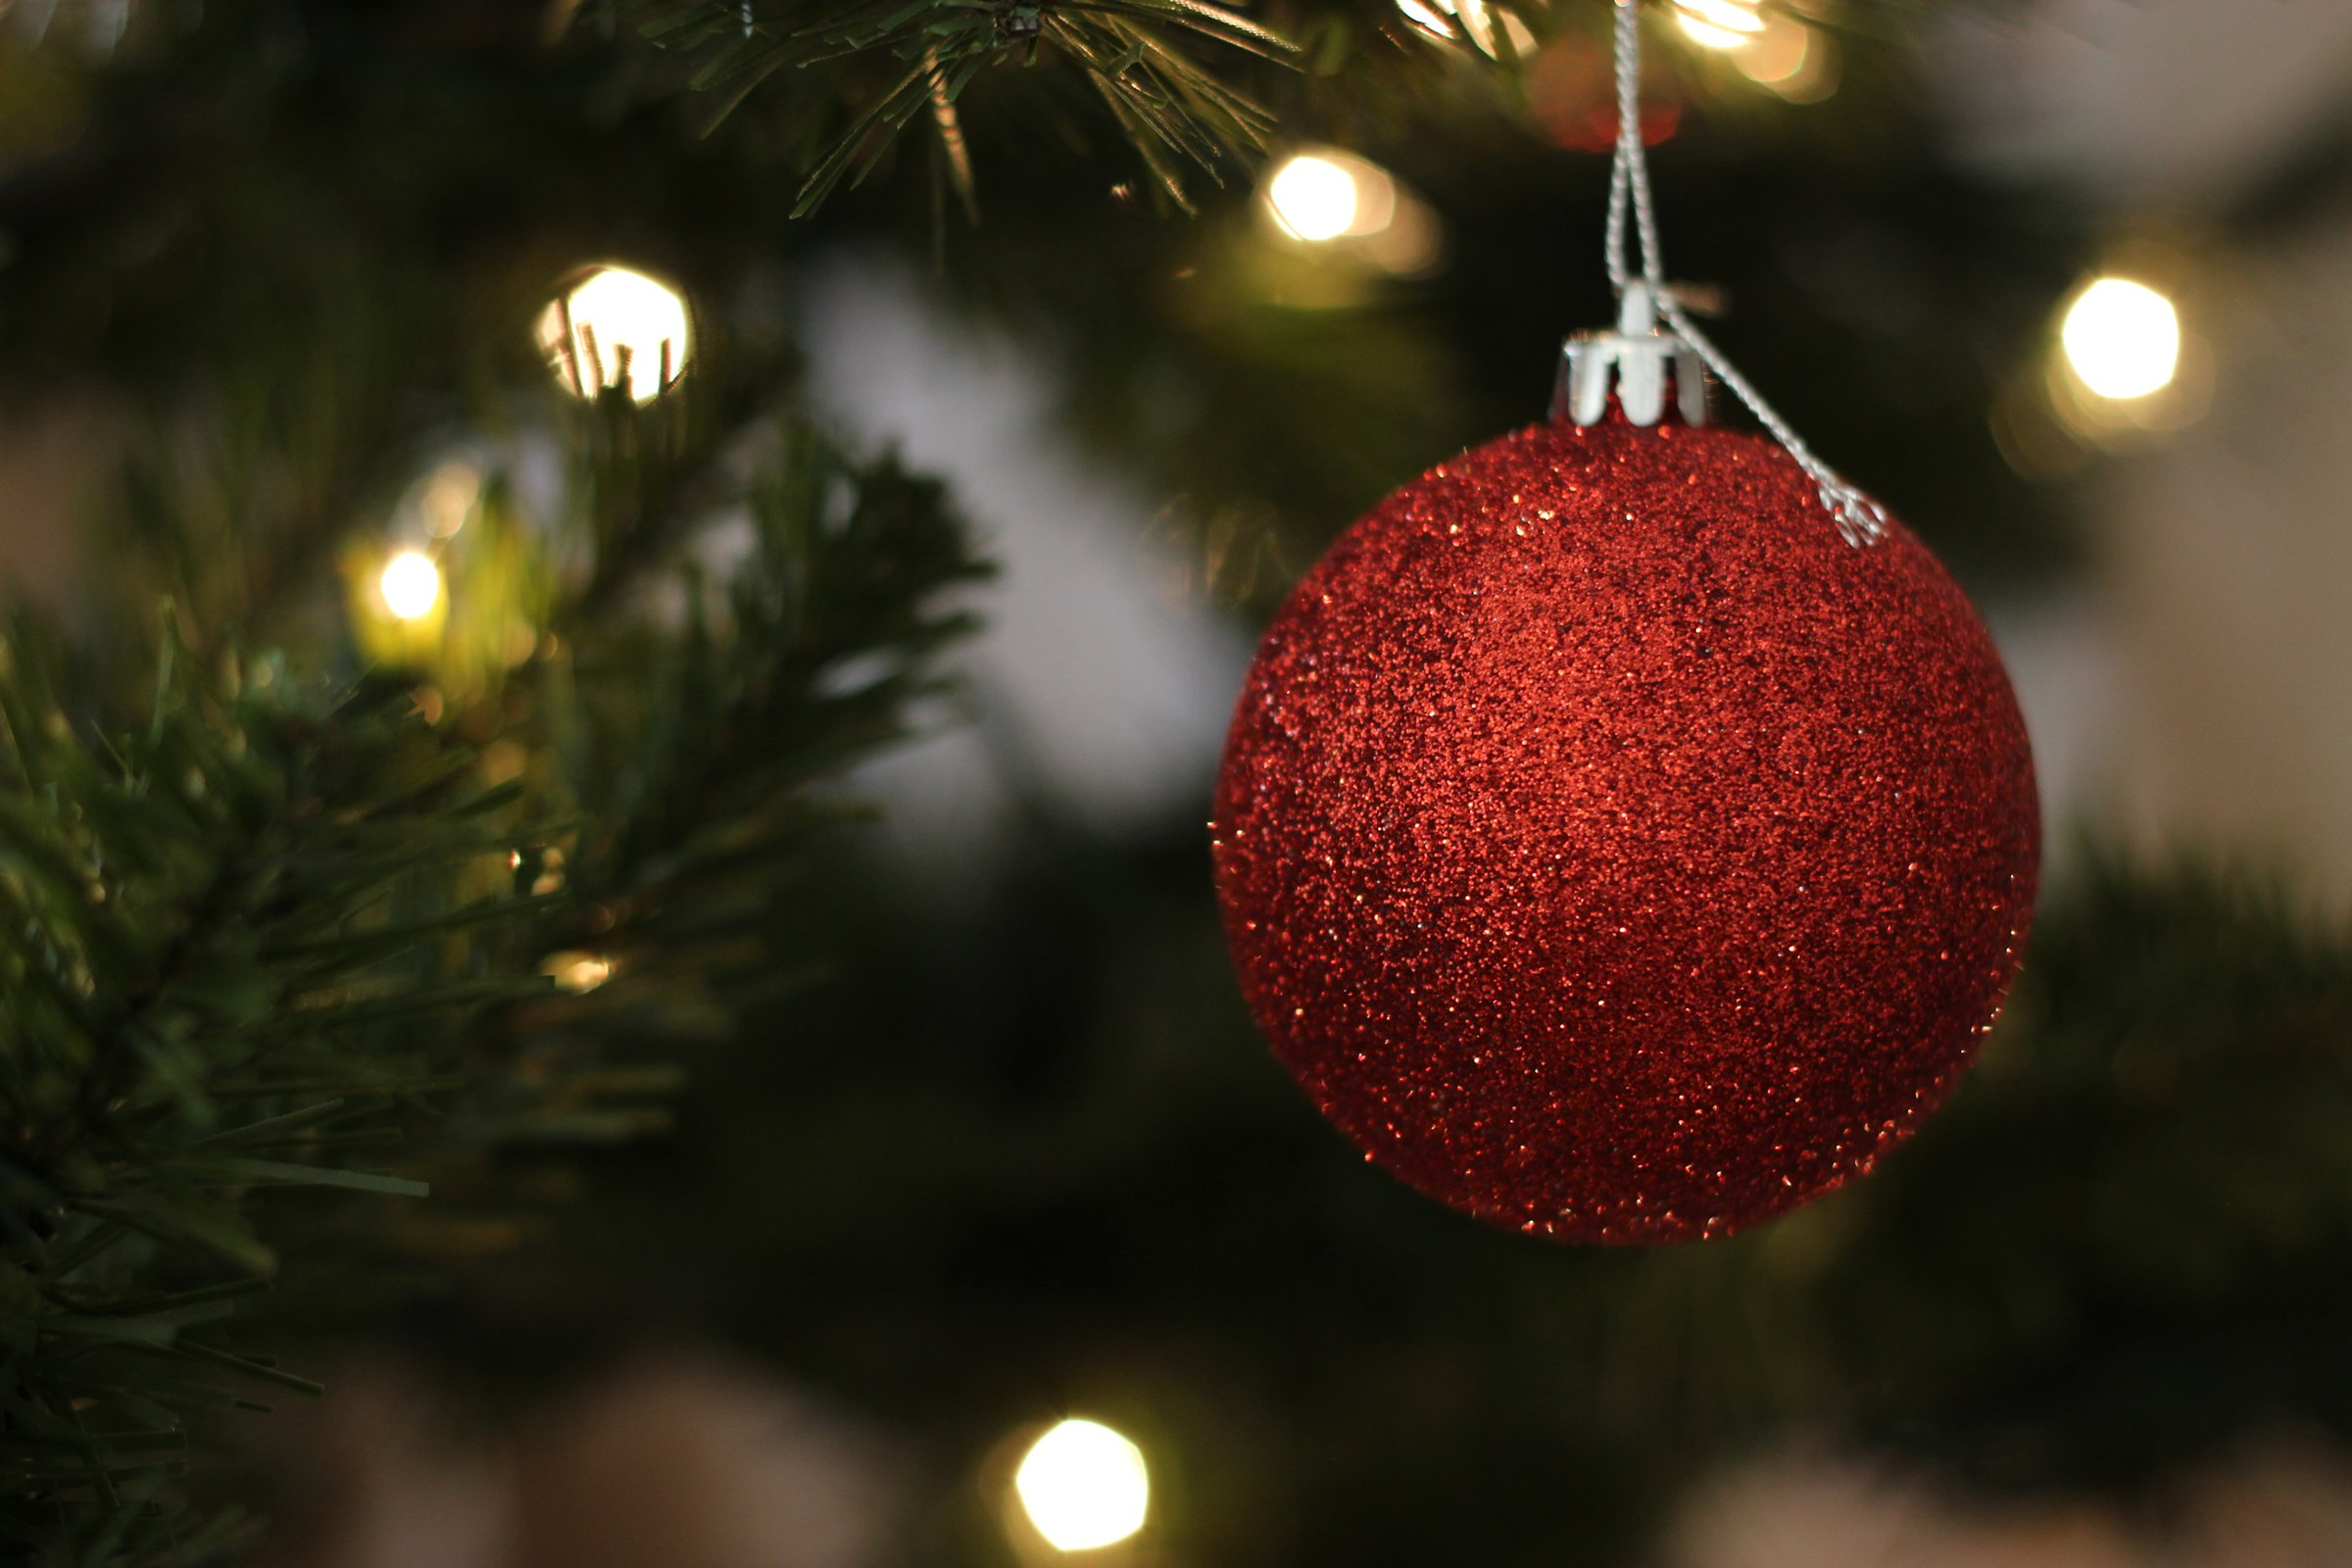 Free Stock Photo Of Red Ball Ornament Hanging On Christmas Tree